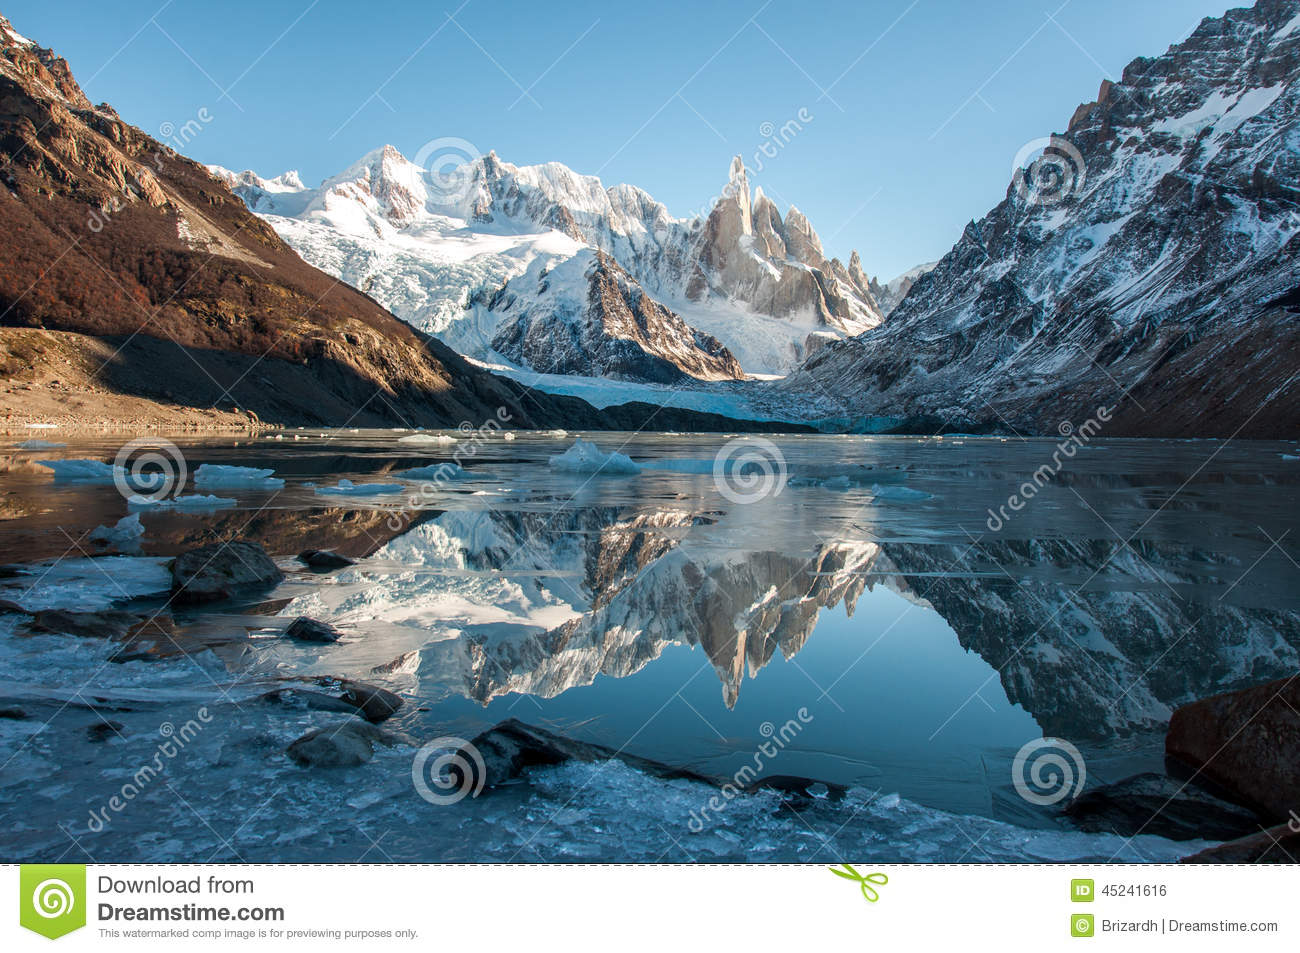 Cerro Torre clipart #5, Download drawings